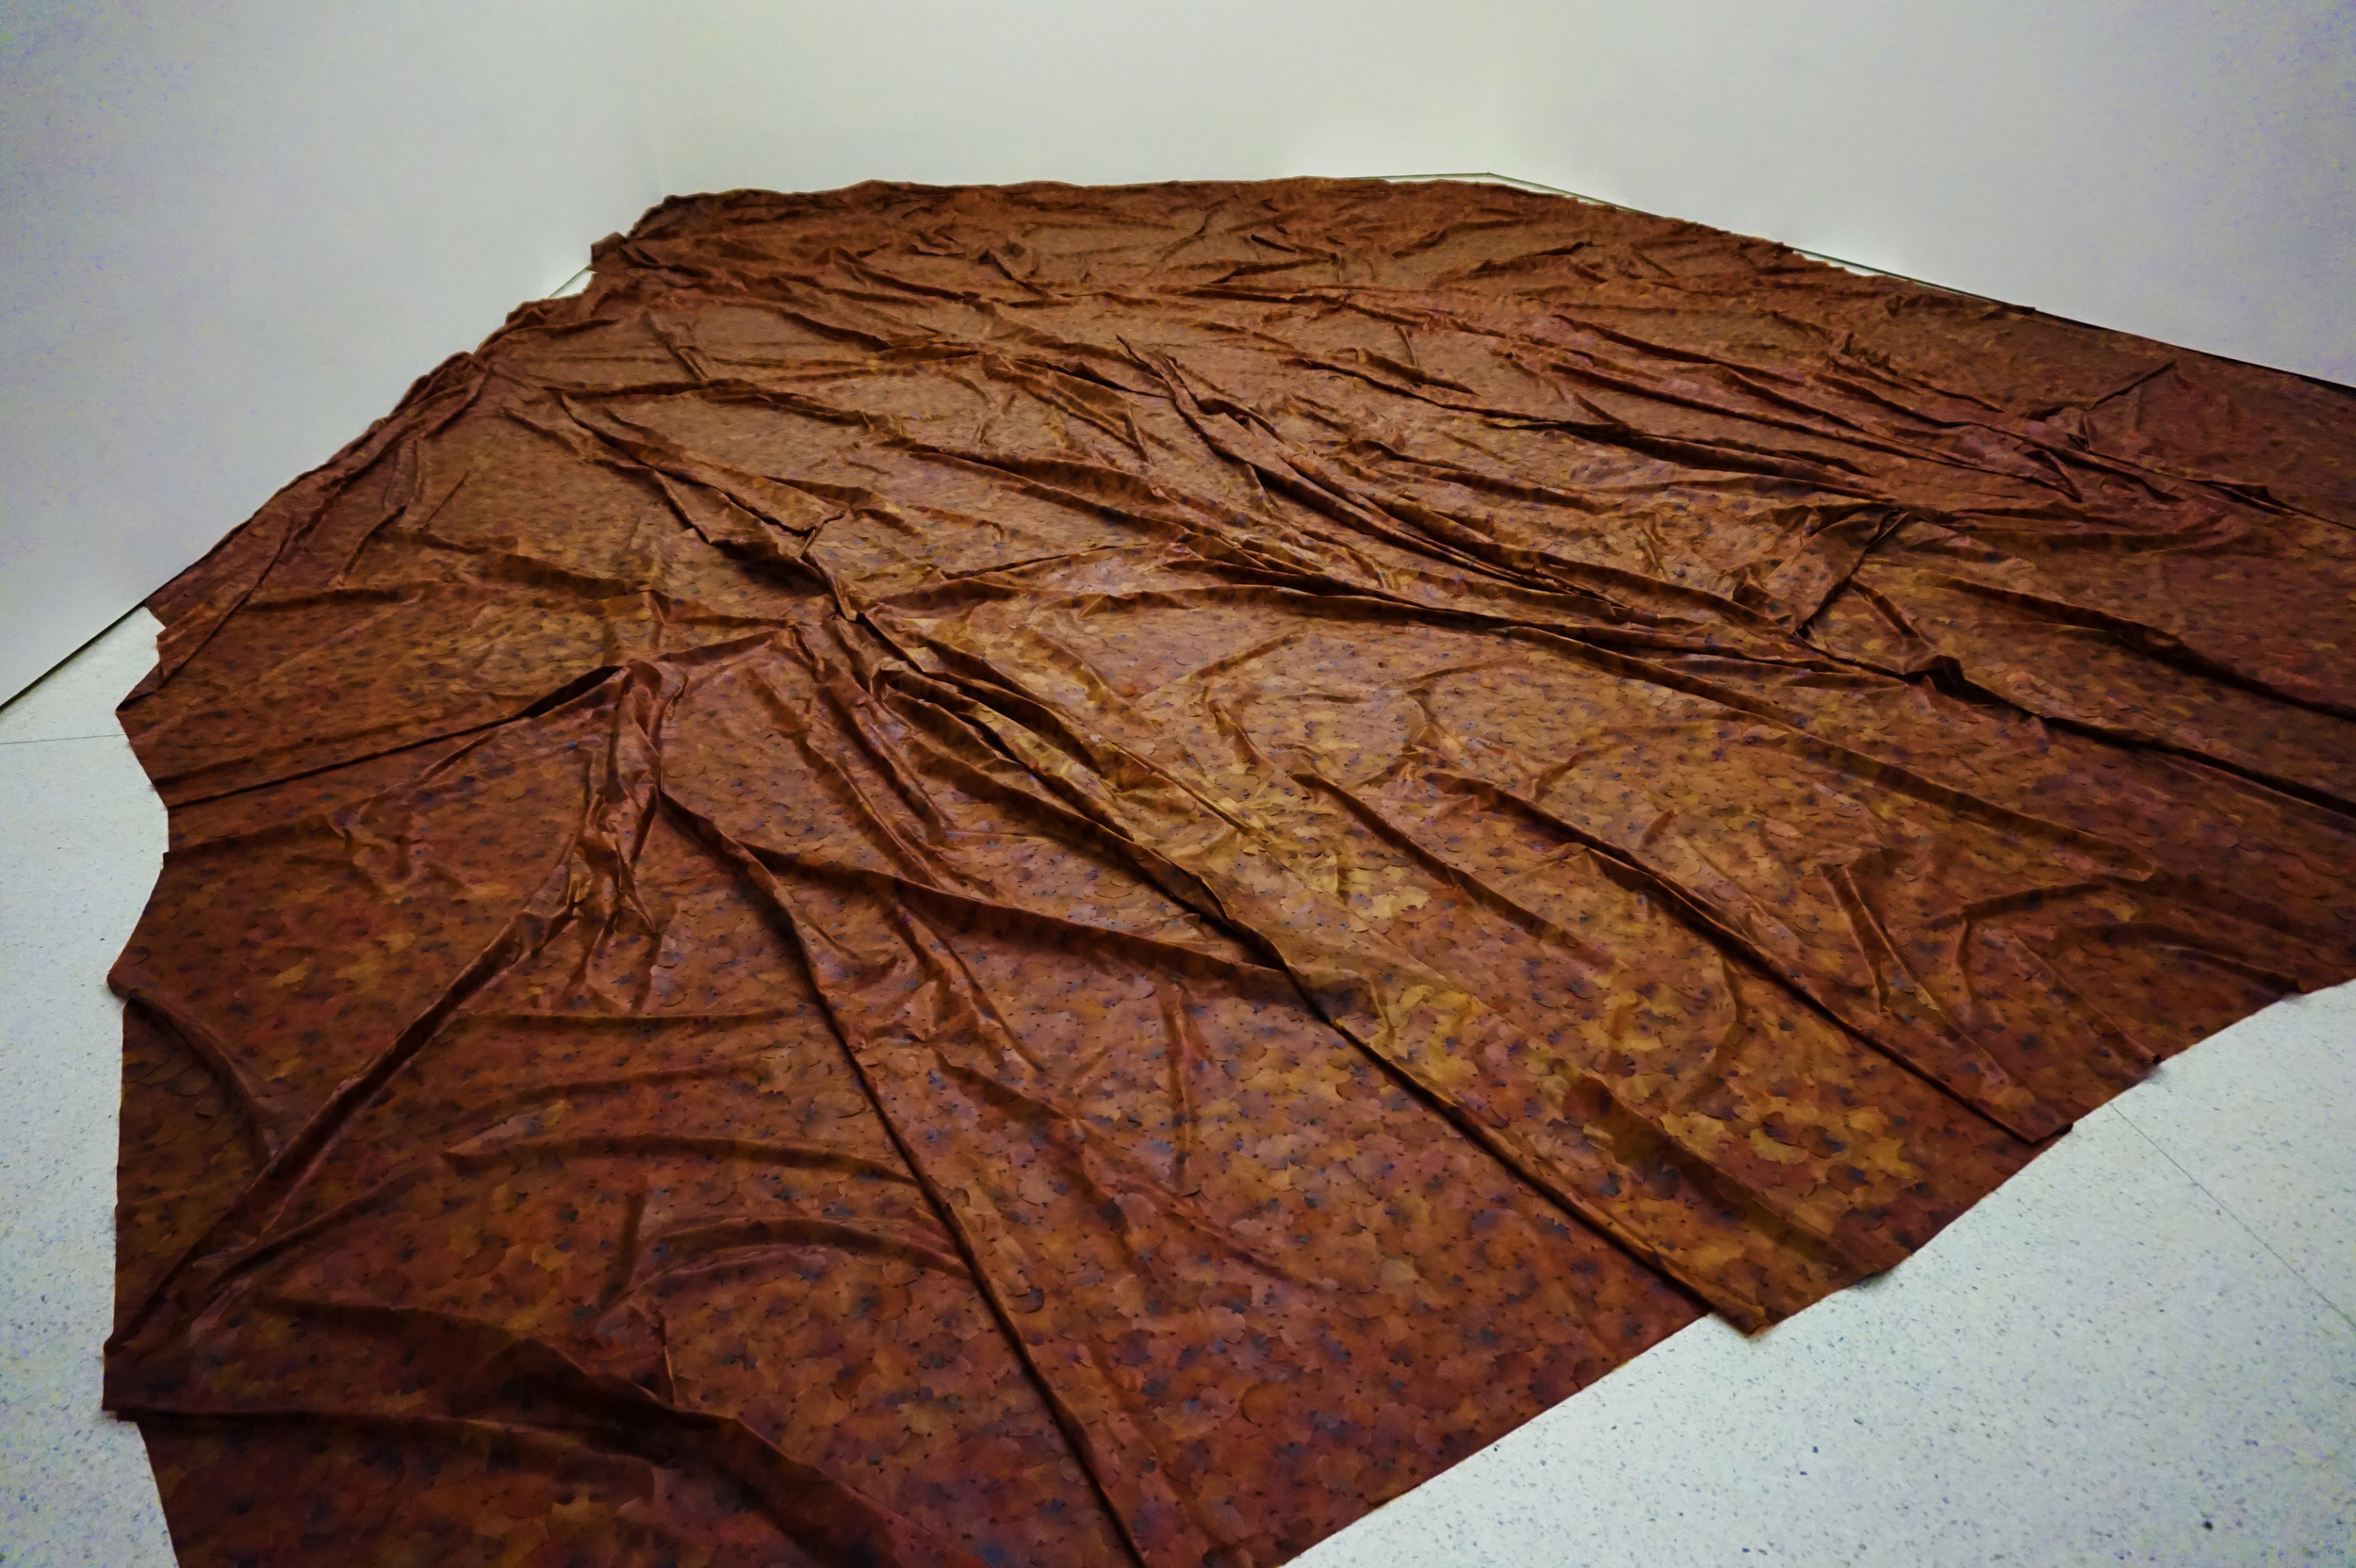 A Flor de Piel by Doris Salcedo c.2012, a blanket made of preserved and stitched-together rose petals that covered the floor of the room, as a tribute to a Colombian nurse that was tortured to death